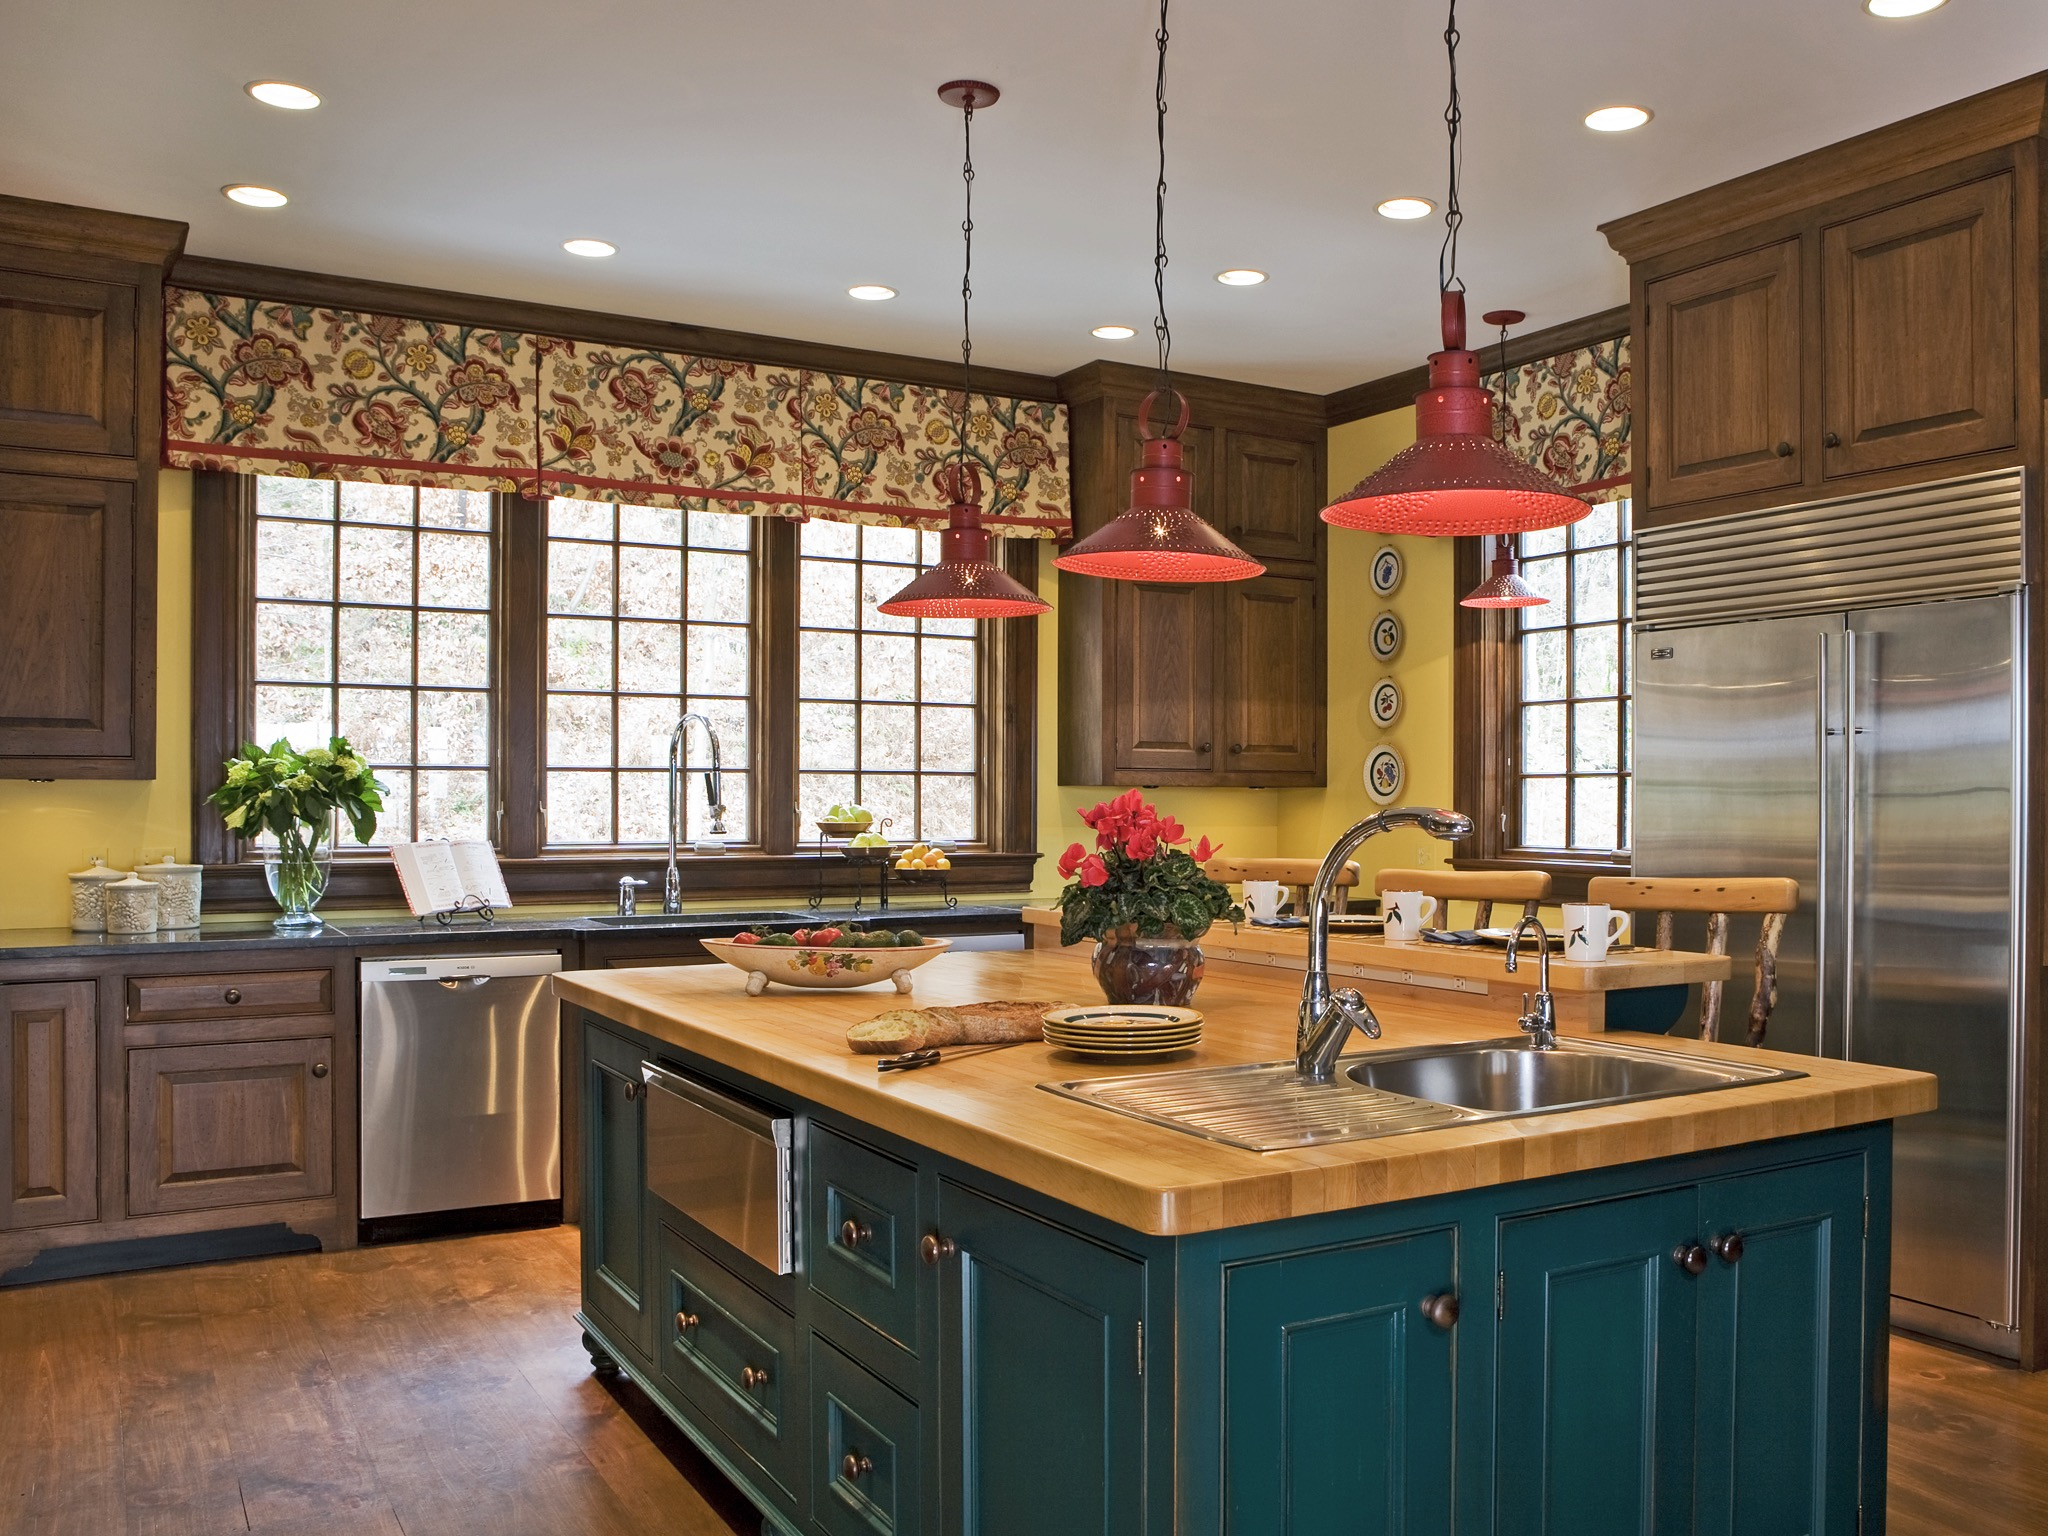 Beauty Hanging Pendant Lights For Country Kitchen Decor (View 11 of 20)